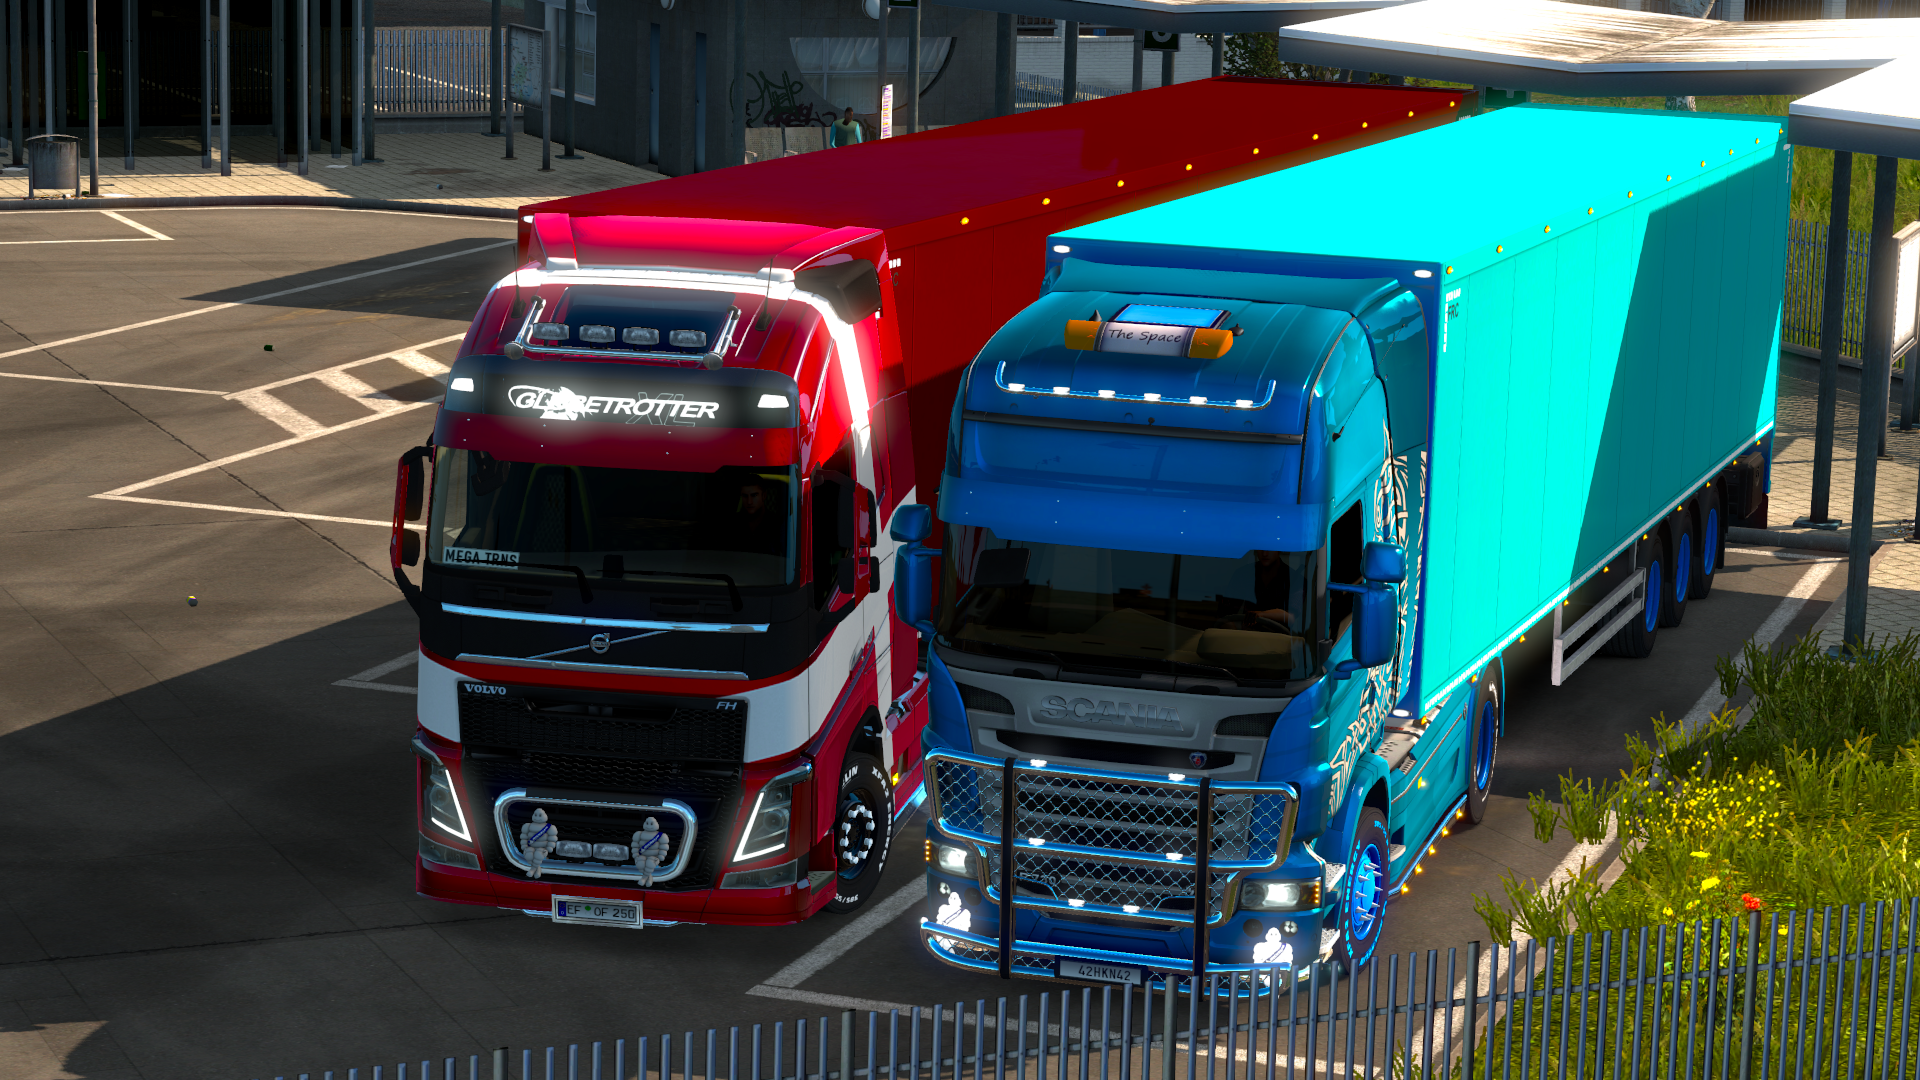 ets2_20190621_210138_00.png